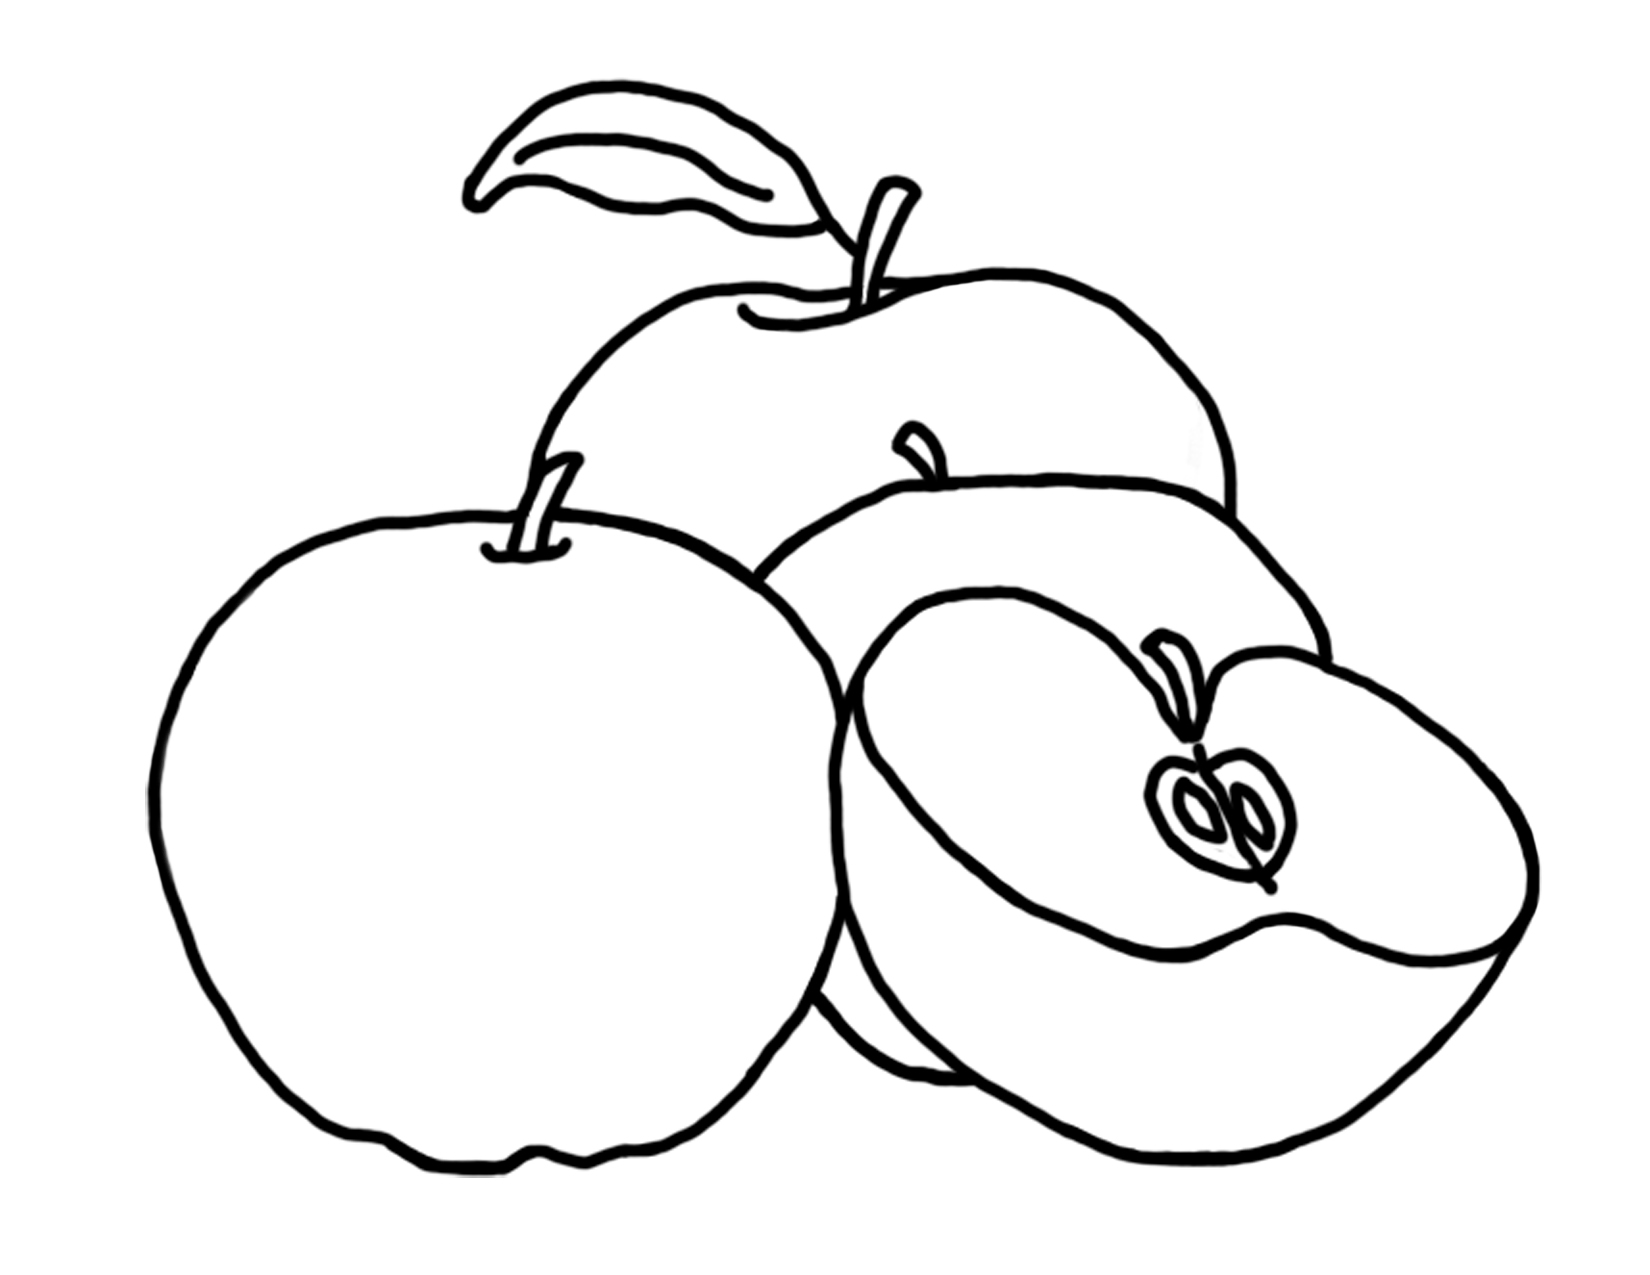 children picking apples coloring pages - photo#29